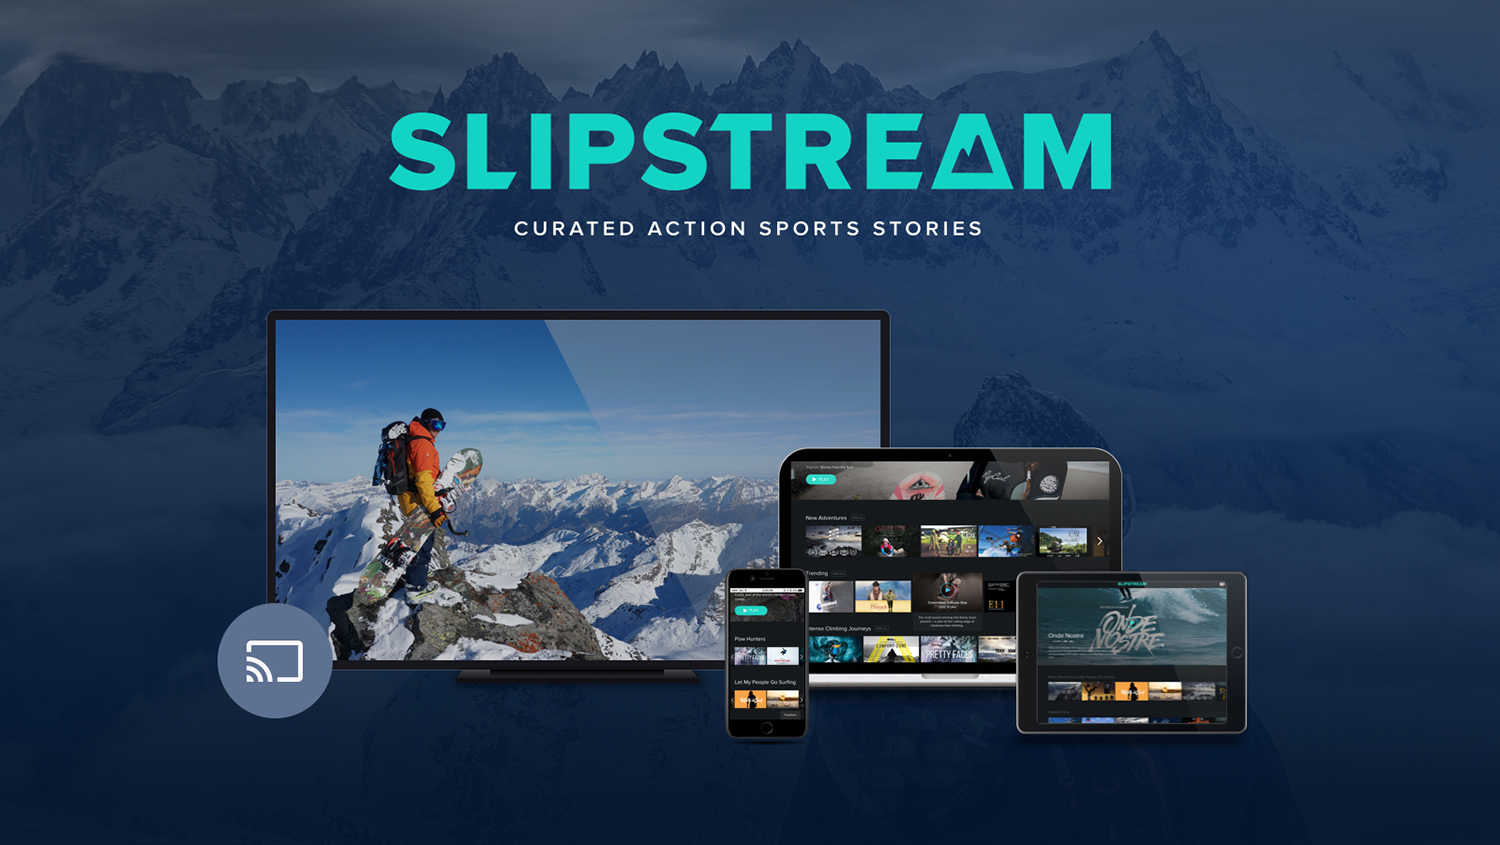 'Slipstream' a Netflix-like Streaming Service for